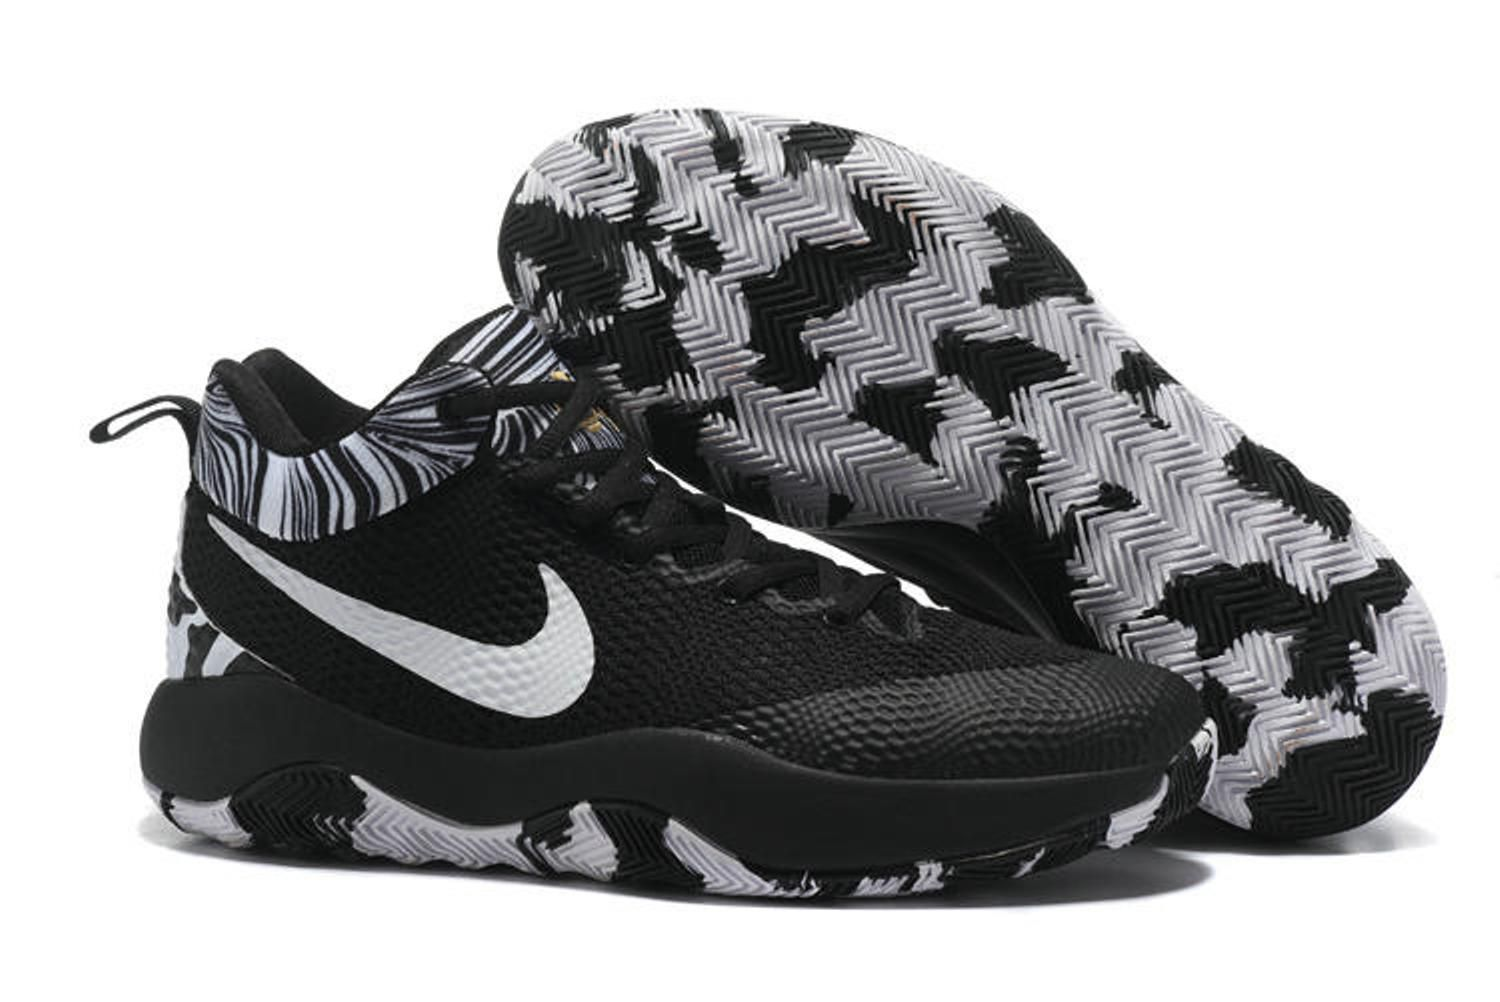 new styles 97ee5 94736 Nike ZOOM HYPER REV 2017 Black Running Shoes - Buy Nike ZOOM HYPER REV 2017  Black Running Shoes Online at Best Prices in India on Snapdeal